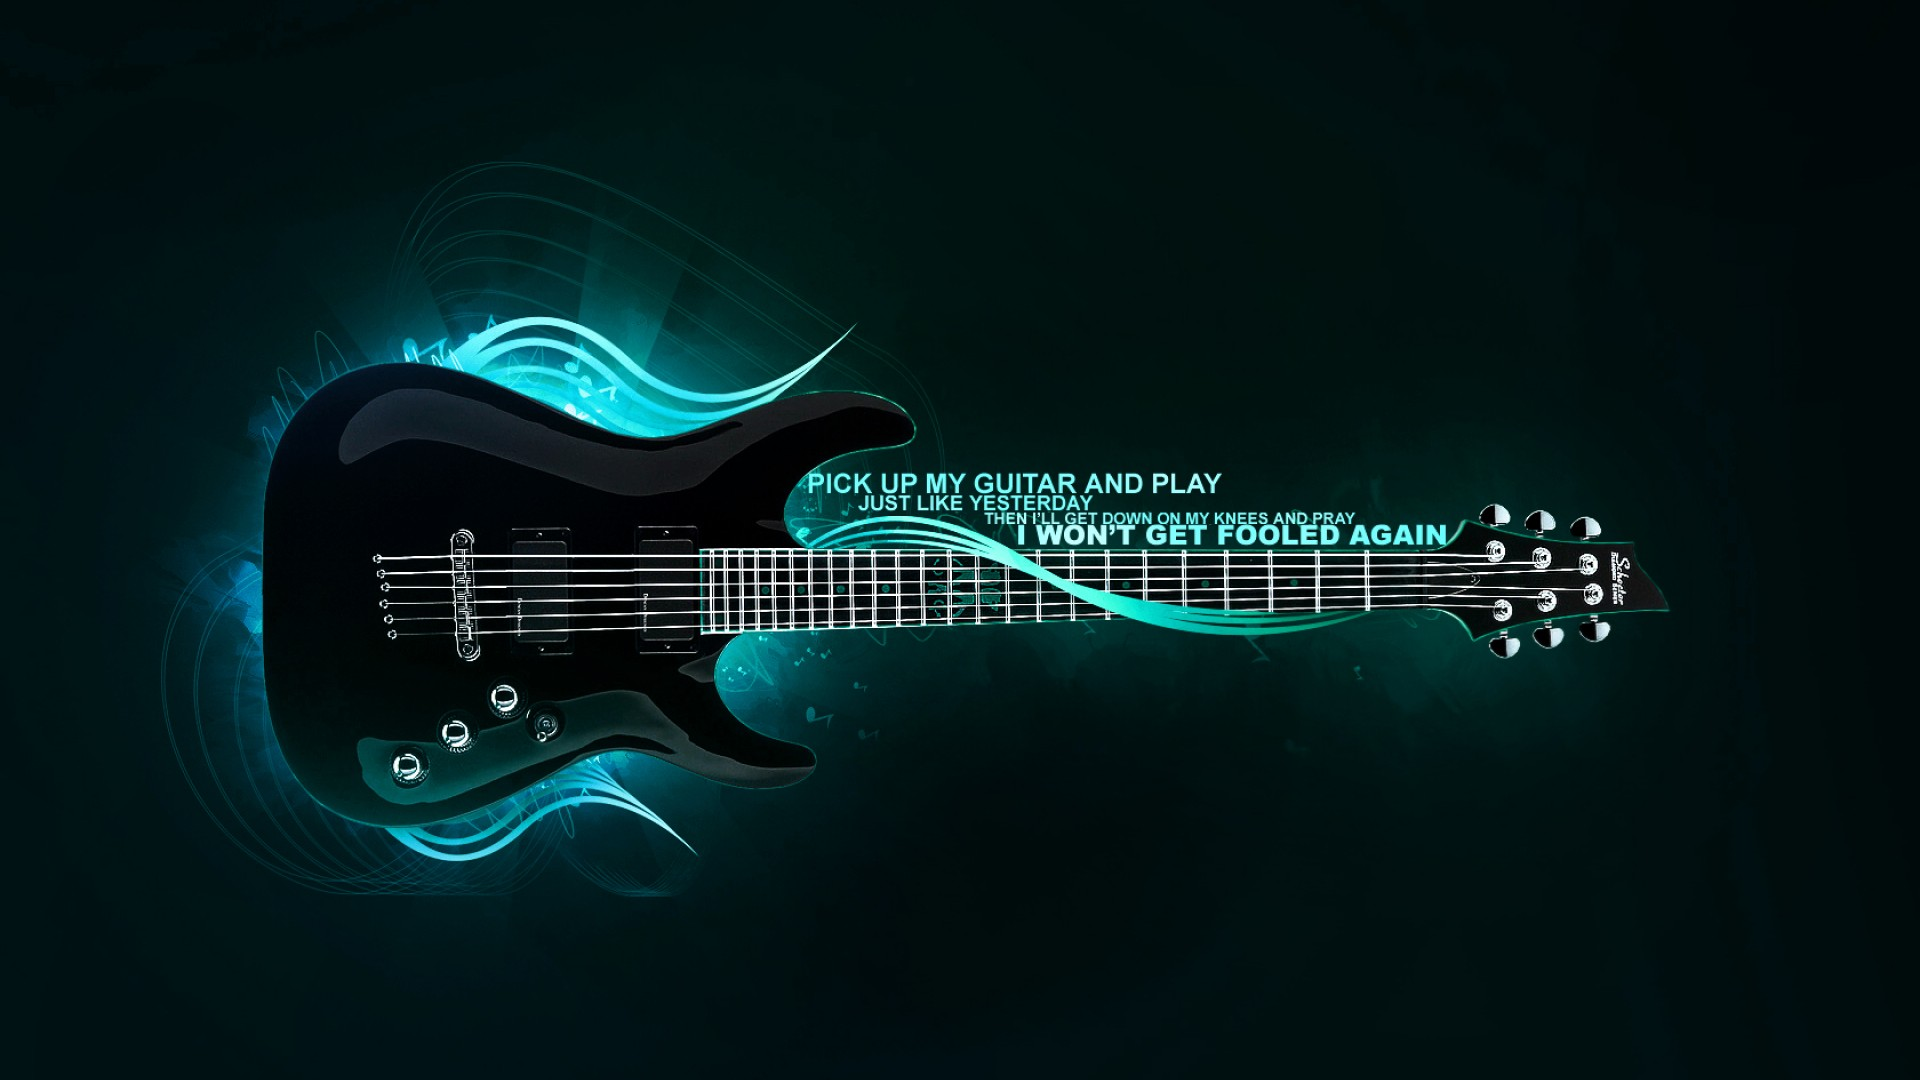 Guitar wallpapers high quality download free - Music hd wallpapers free download ...